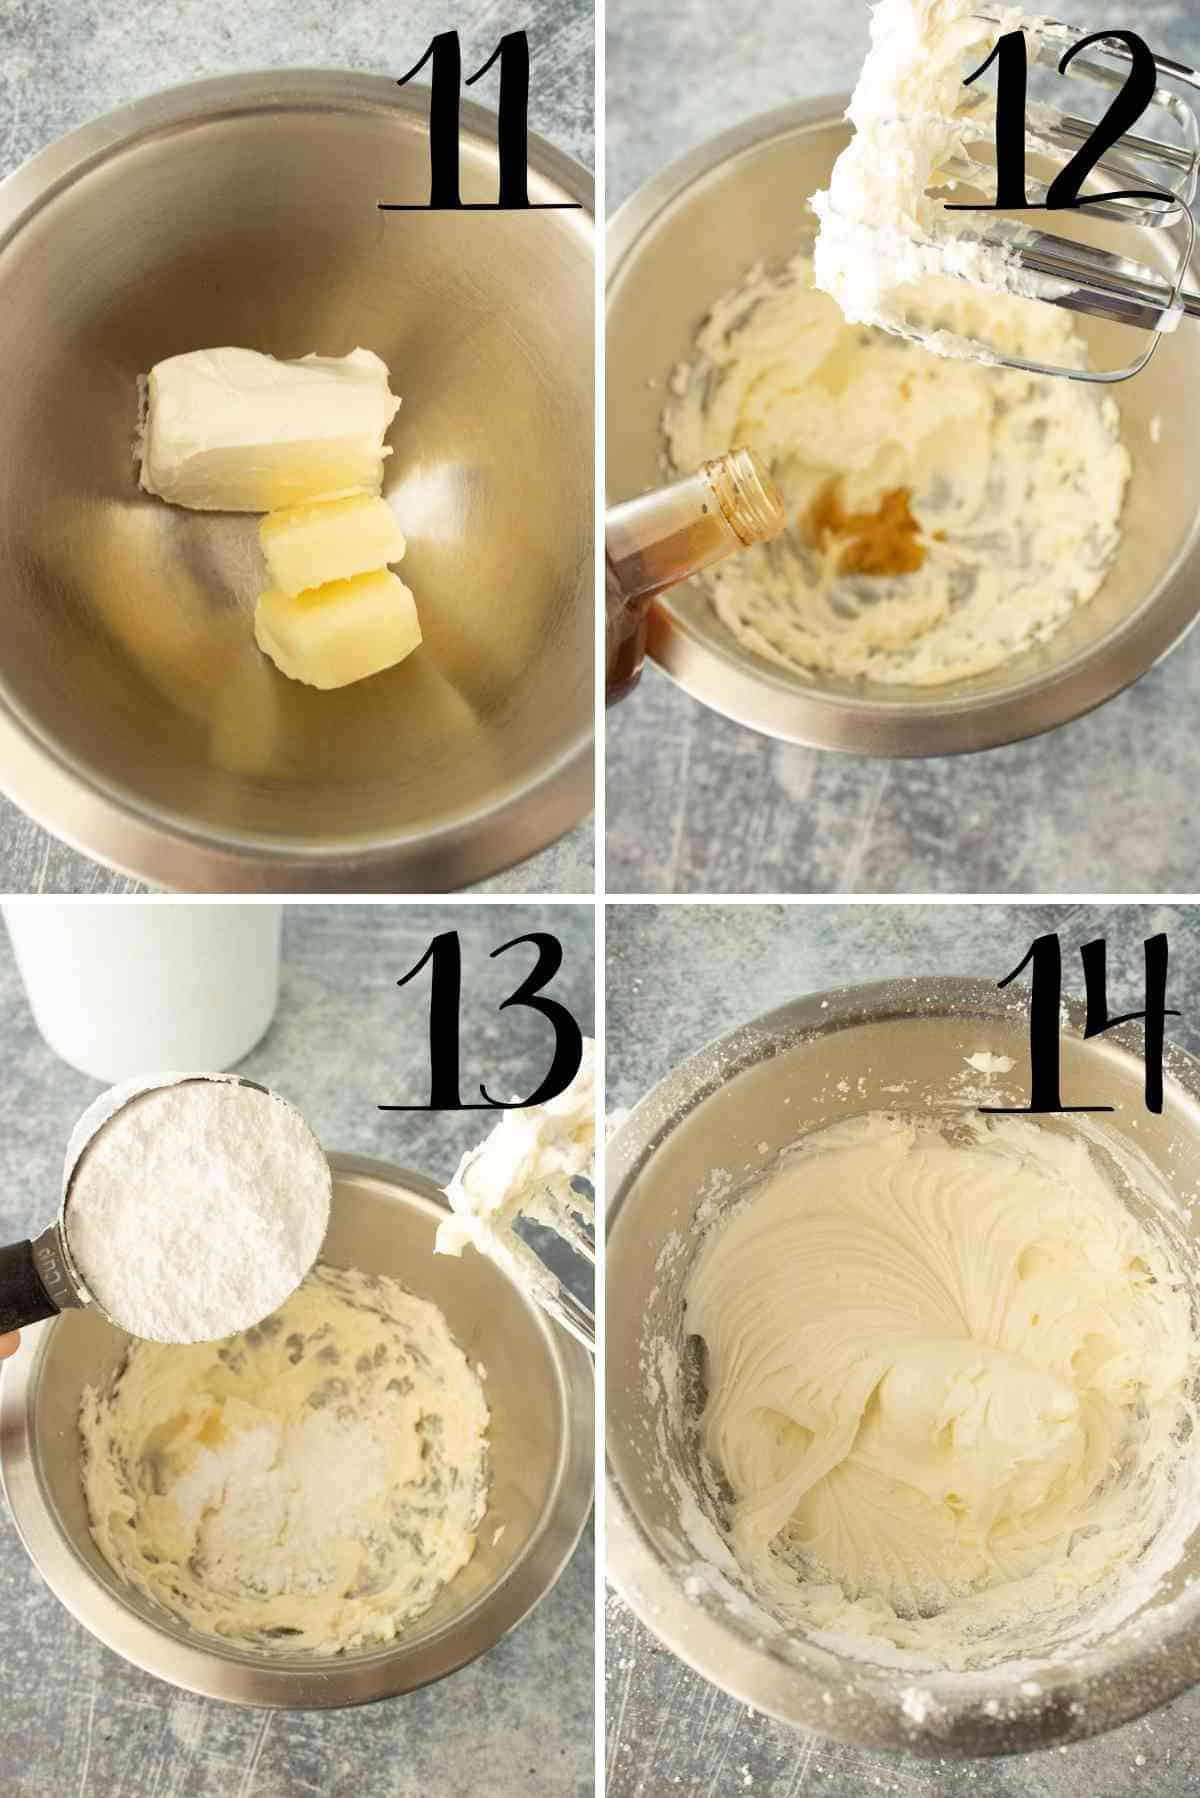 Steps to mixing up the cream cheese frosting.